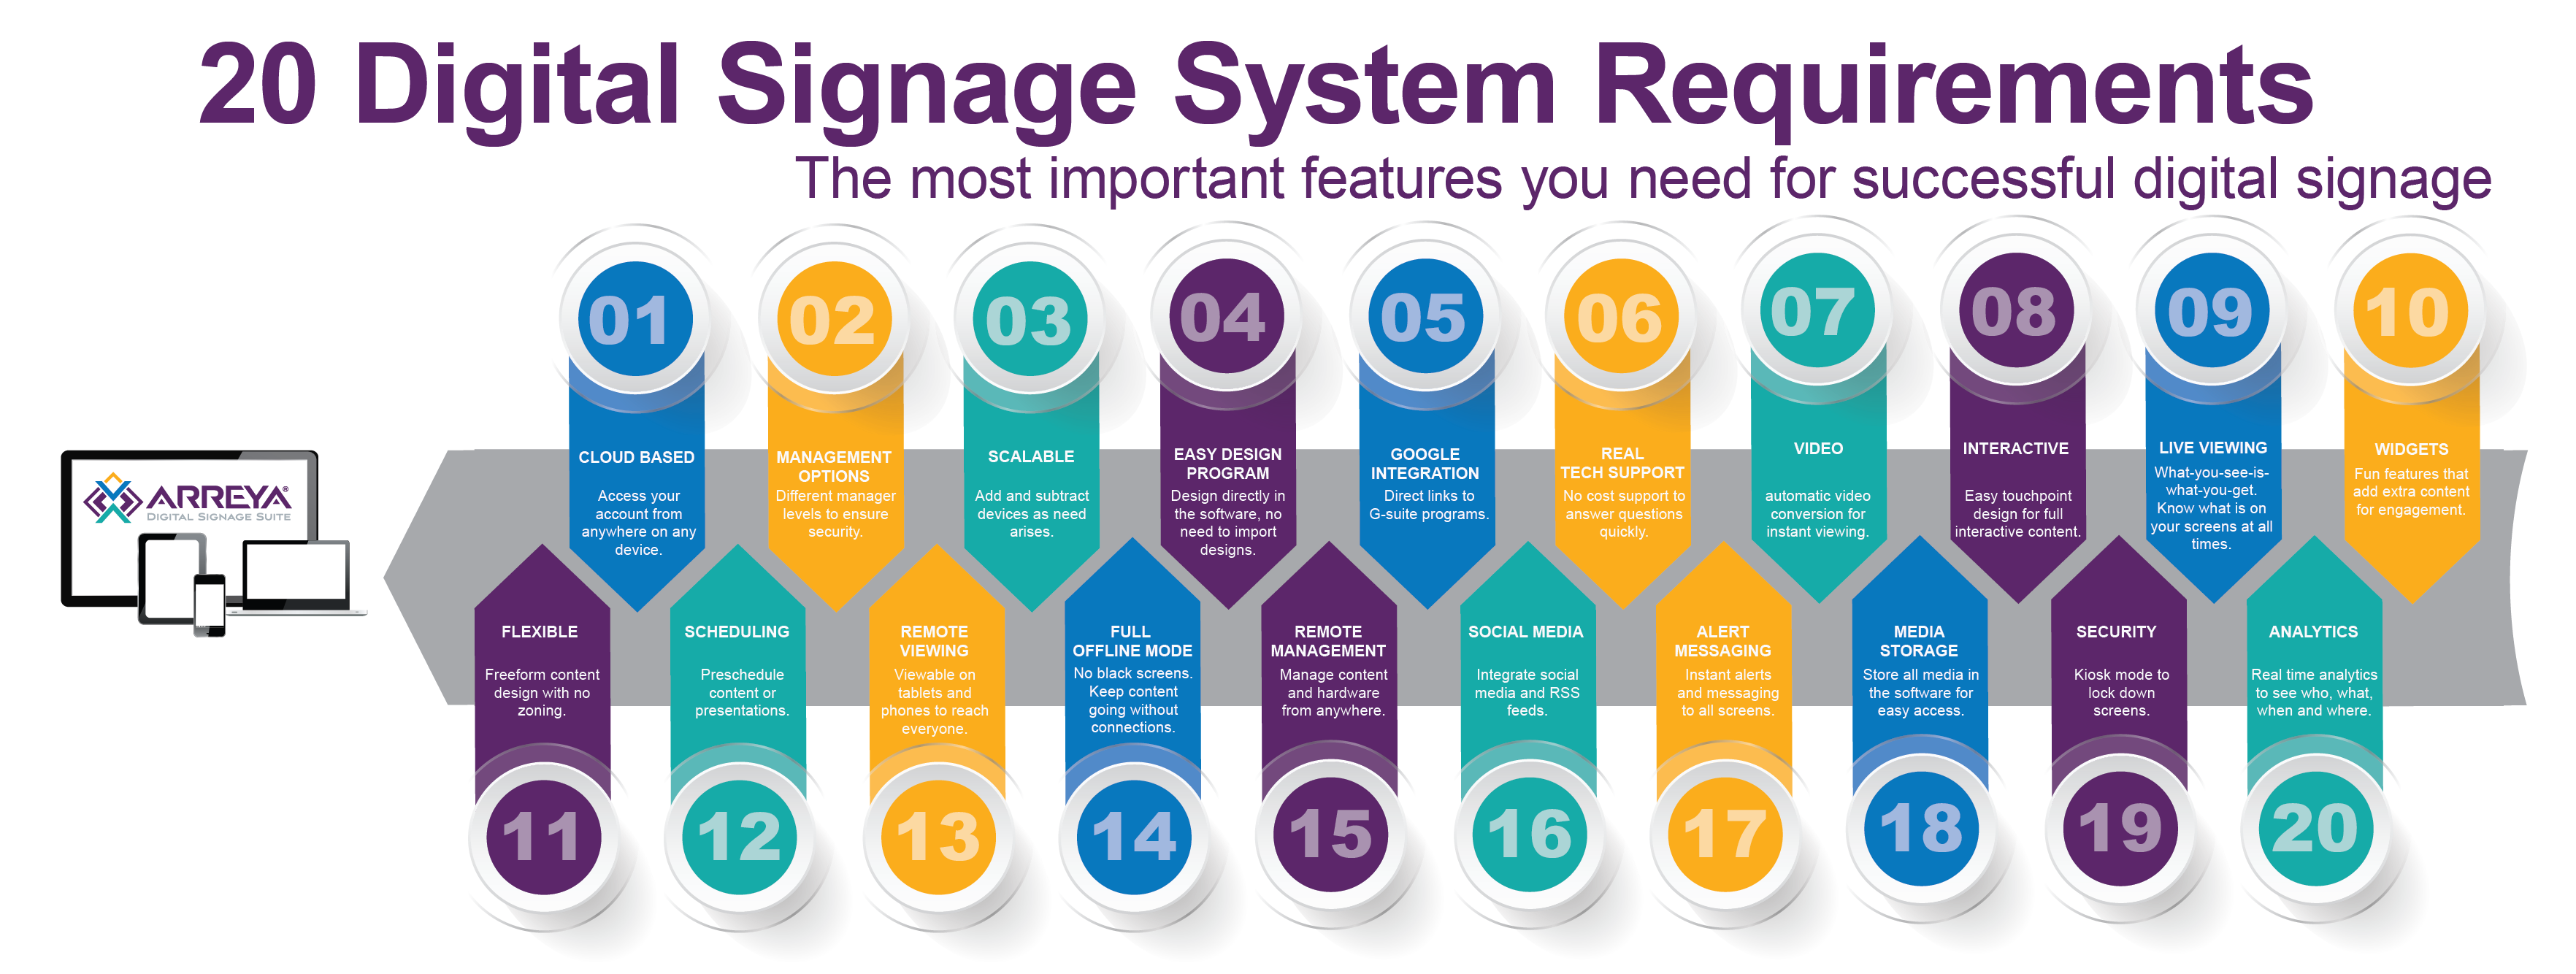 20 Digital Signage System Requirements Infographic Shows You The Most Important Features Needed For A Successful Digital Signage Digital Signage System Signage